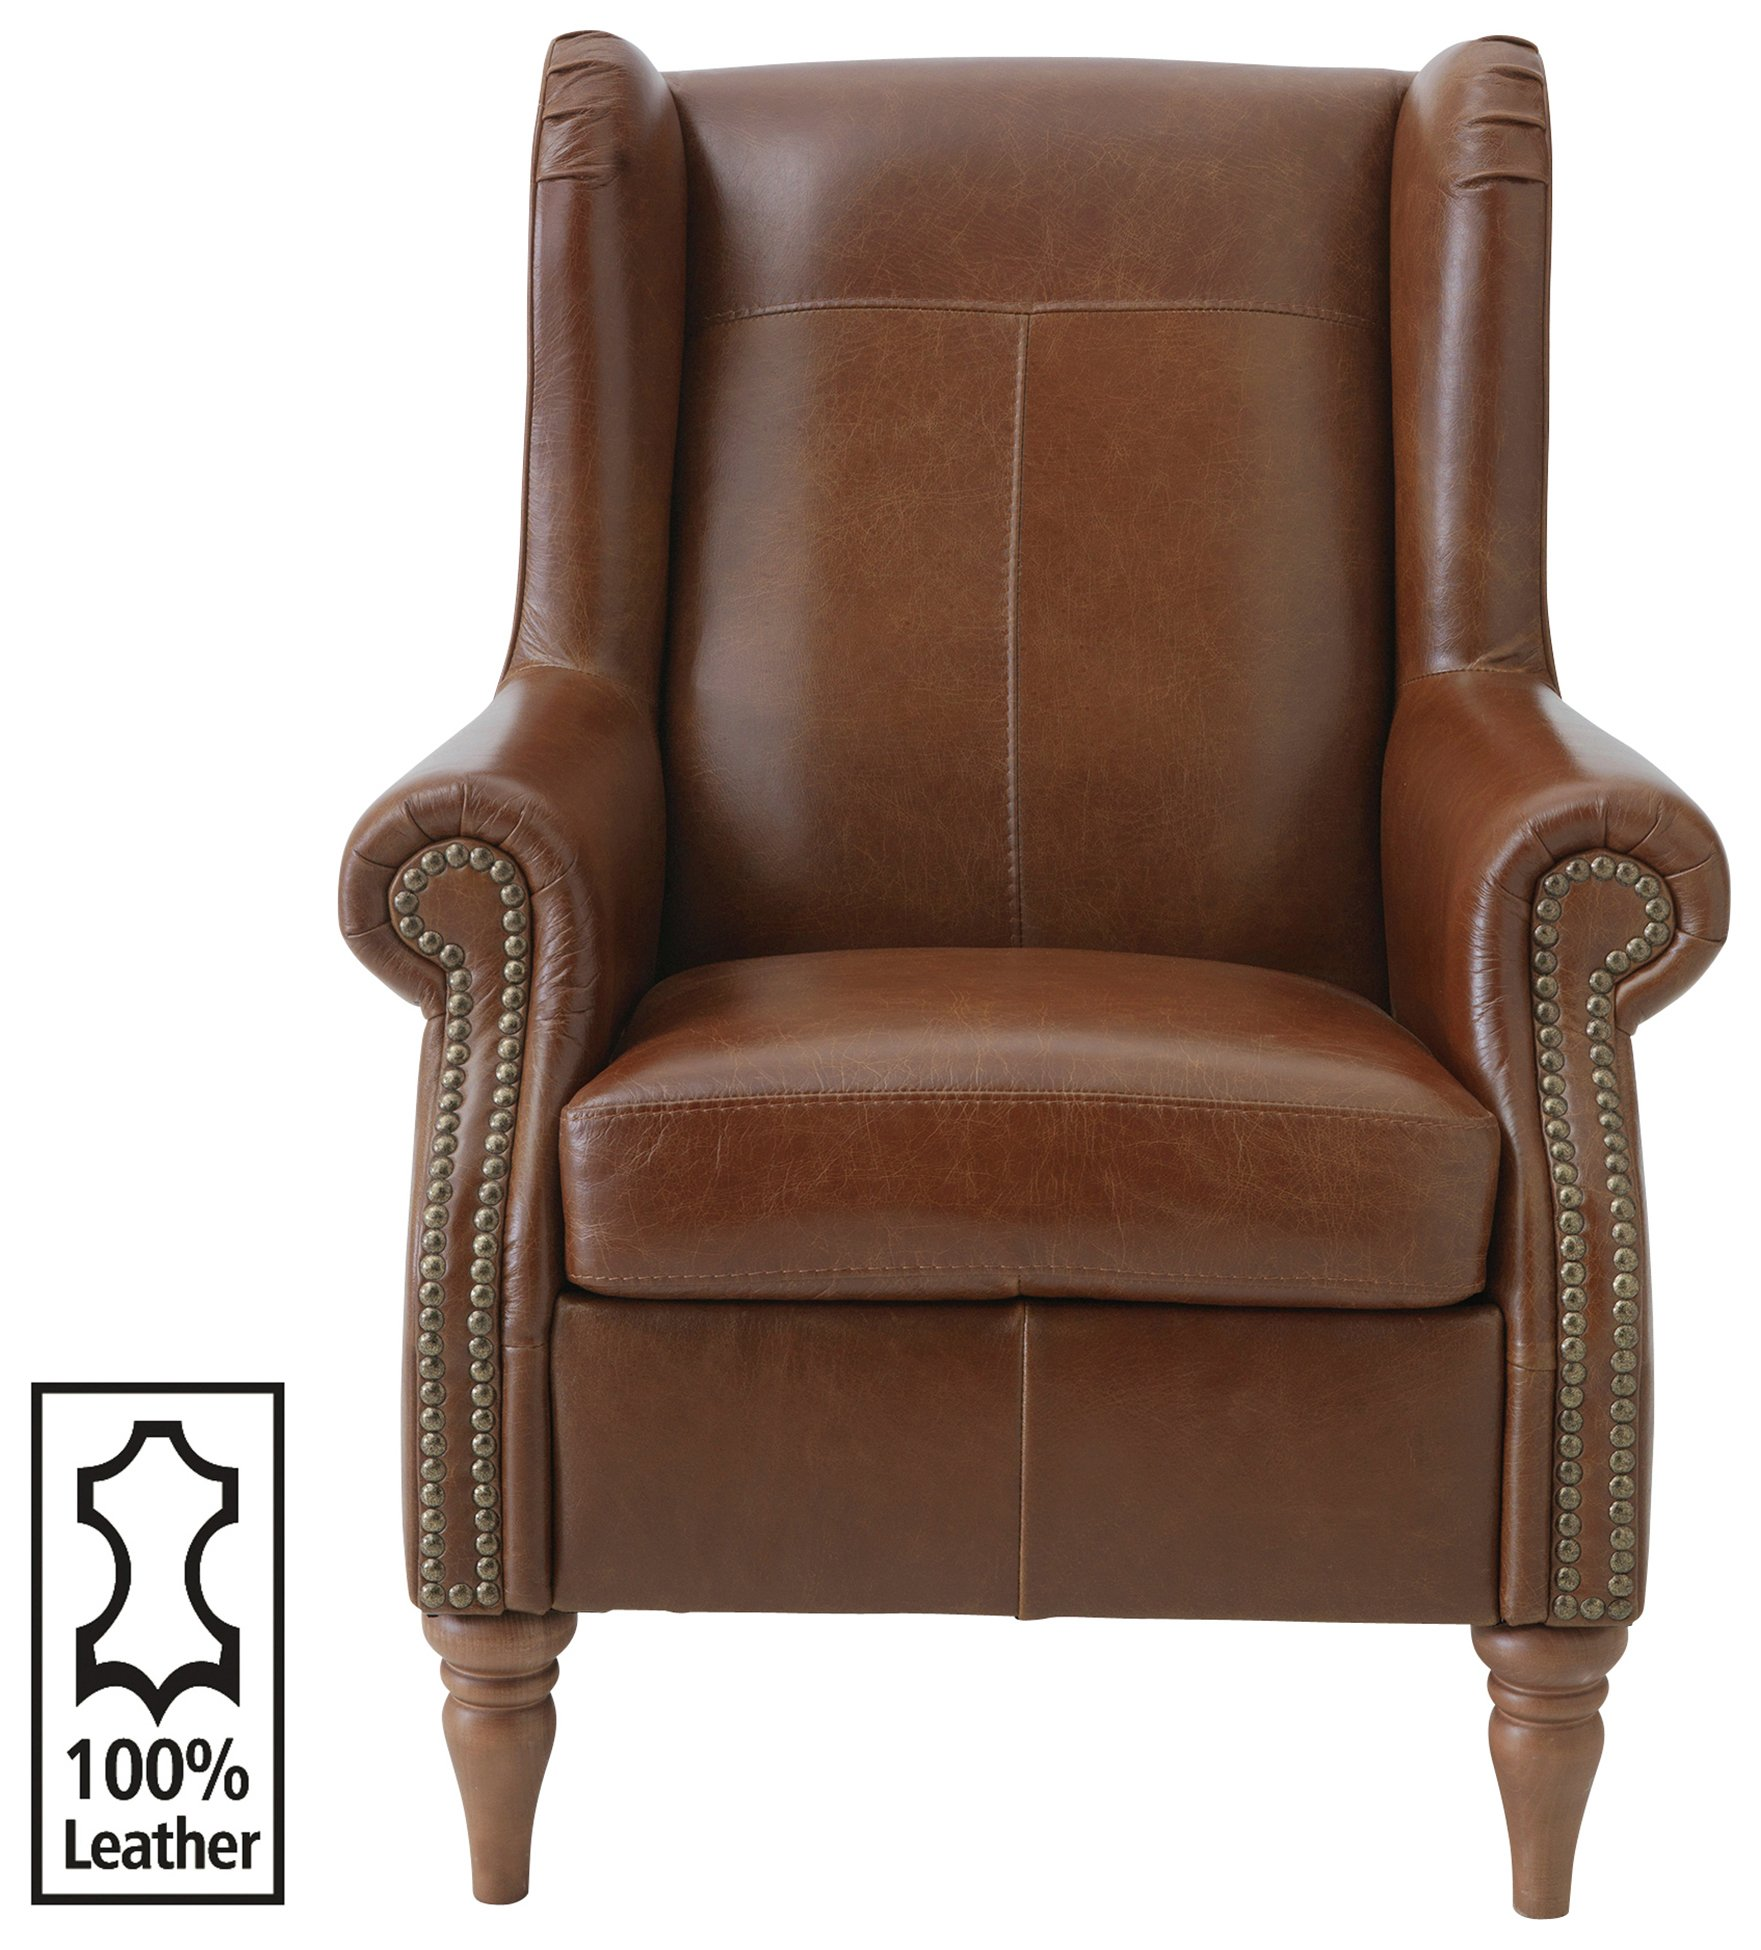 Argos Home Argyll Studded Leather High Back Chair - Tan